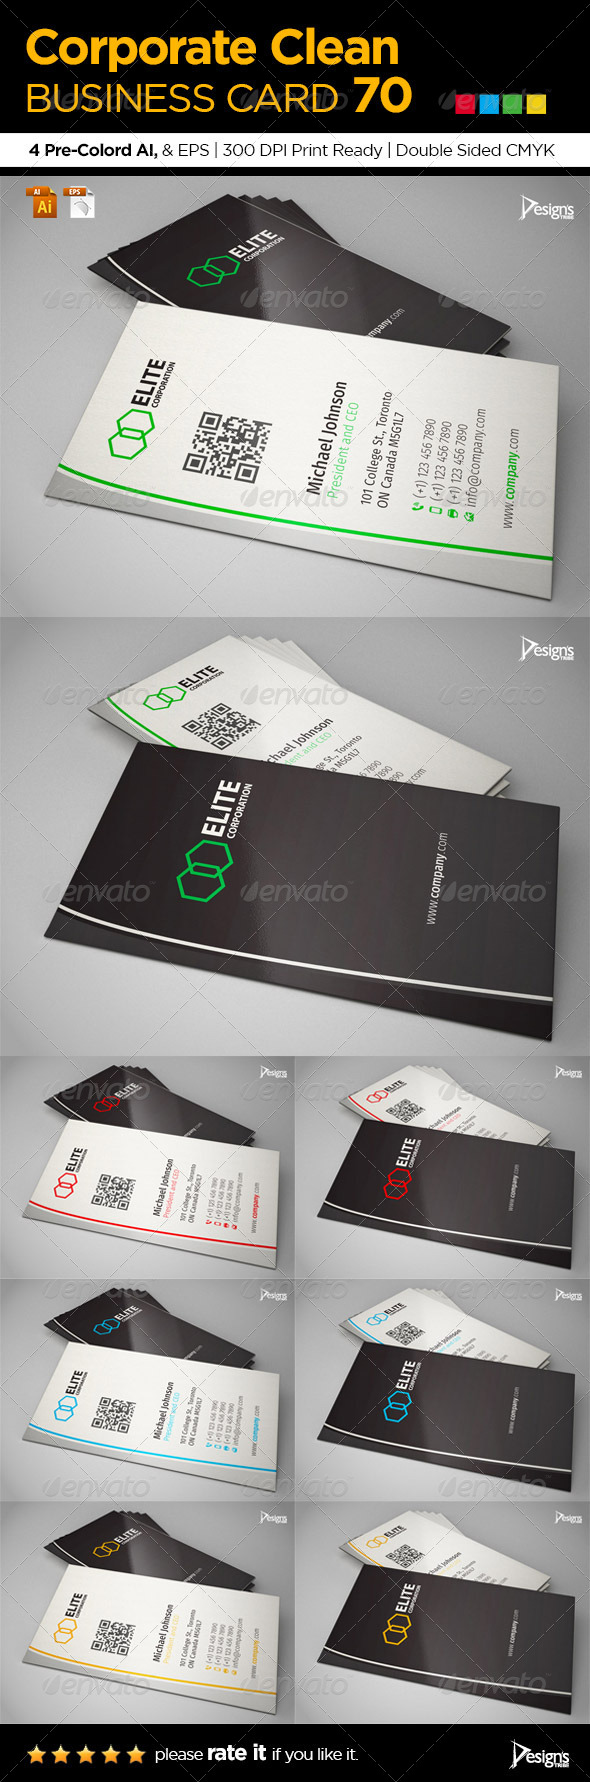 GraphicRiver Corporate Clean Business Card 70 6605509